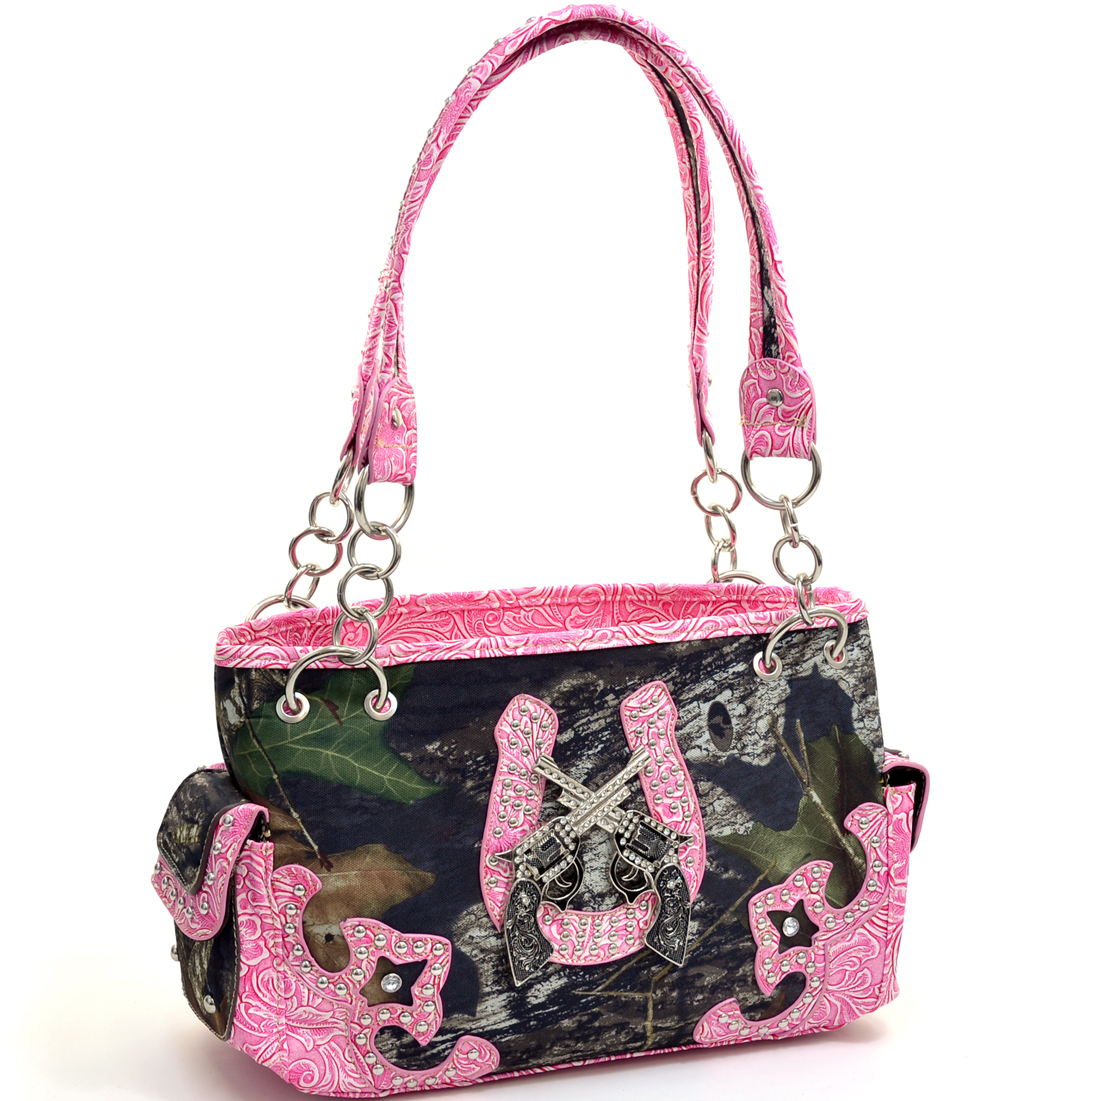 Mossy Oak Studded Camouflage Shoulder Bag